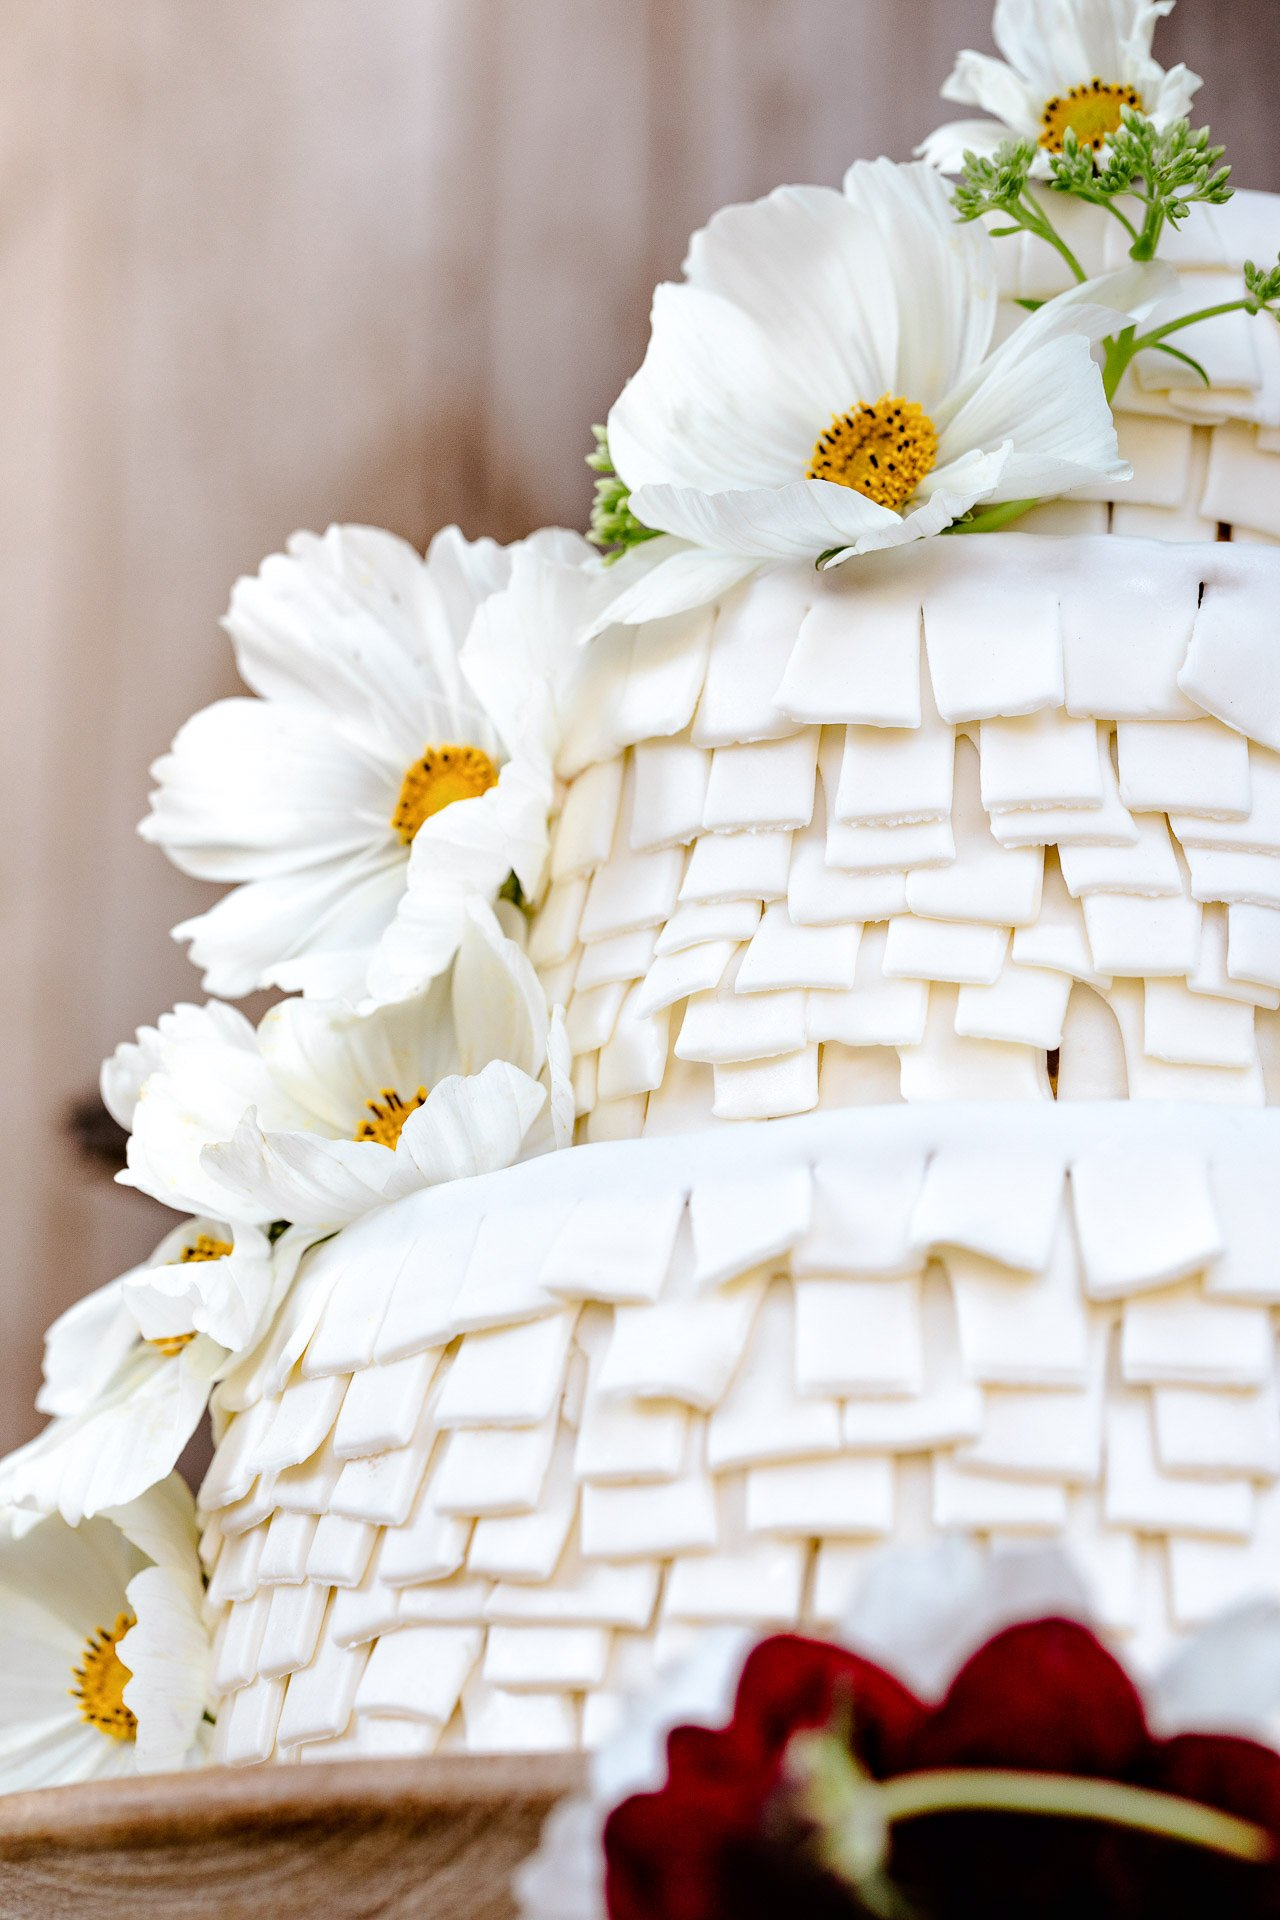 Piñata Wedding Cake | HonestlyYUM (honestlyyum.com)